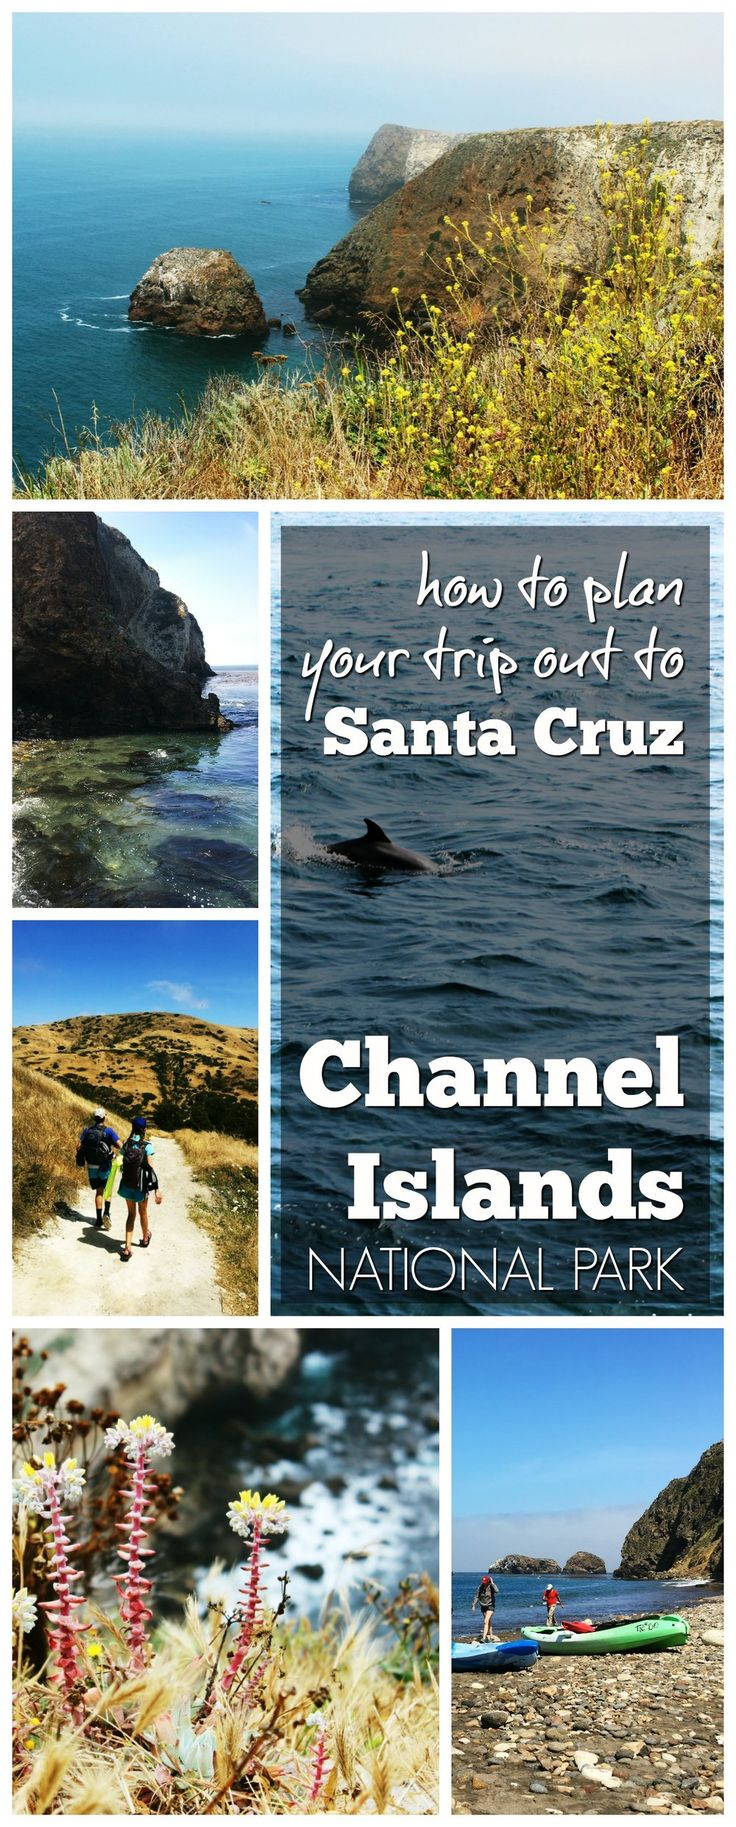 How to plan a day exploring Channel Islands National Park. Hop on the Island Packers boat to Santa Cruz for hiking, kayaking, swimming, snorkeling, scuba, plus flora and fauna only found on this island!